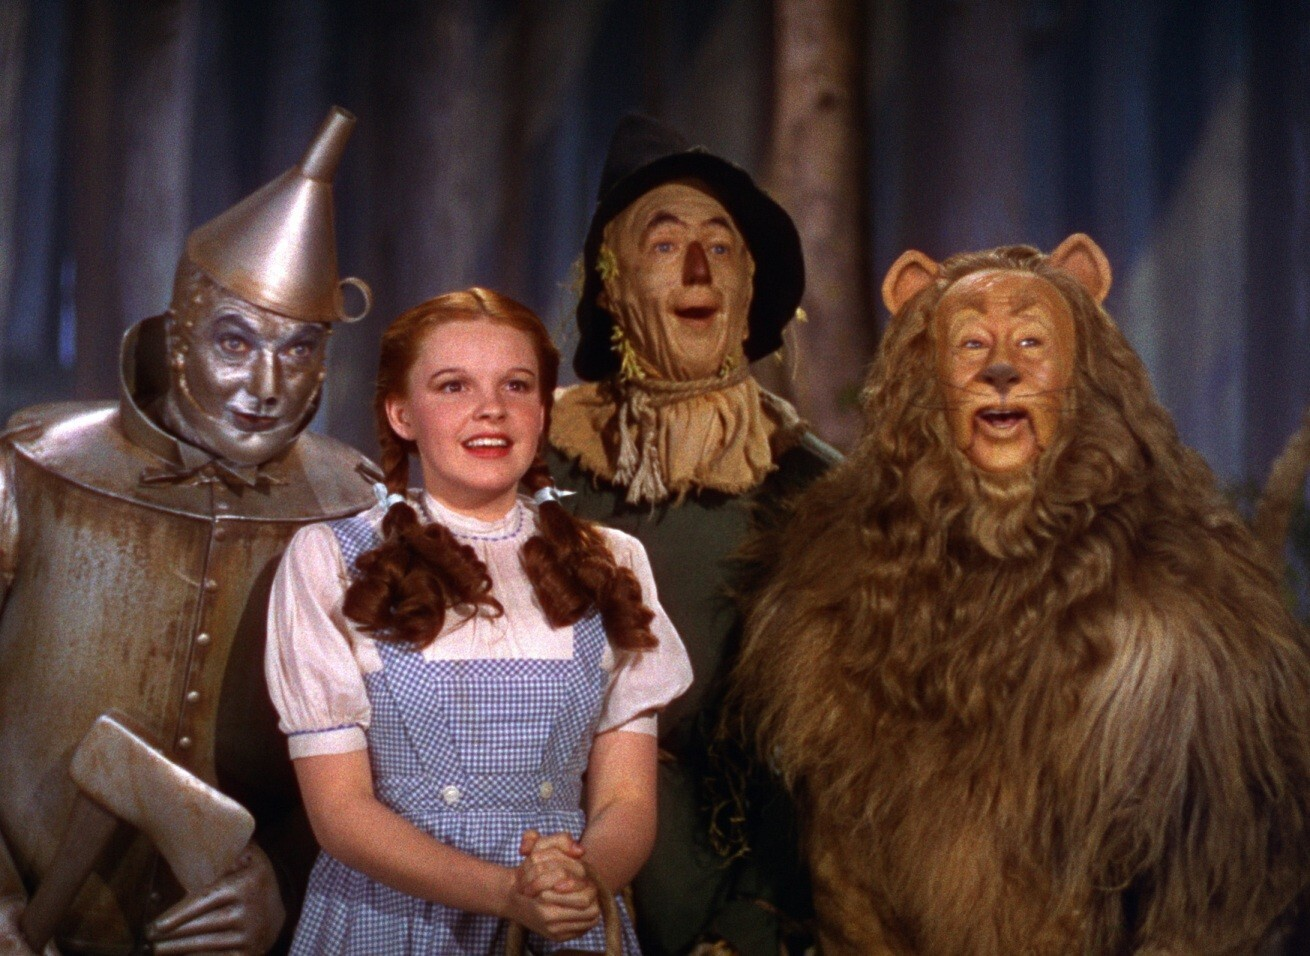 Ana Pastor Nude movies on tv this week: 'the wizard of oz' on thanksgiving